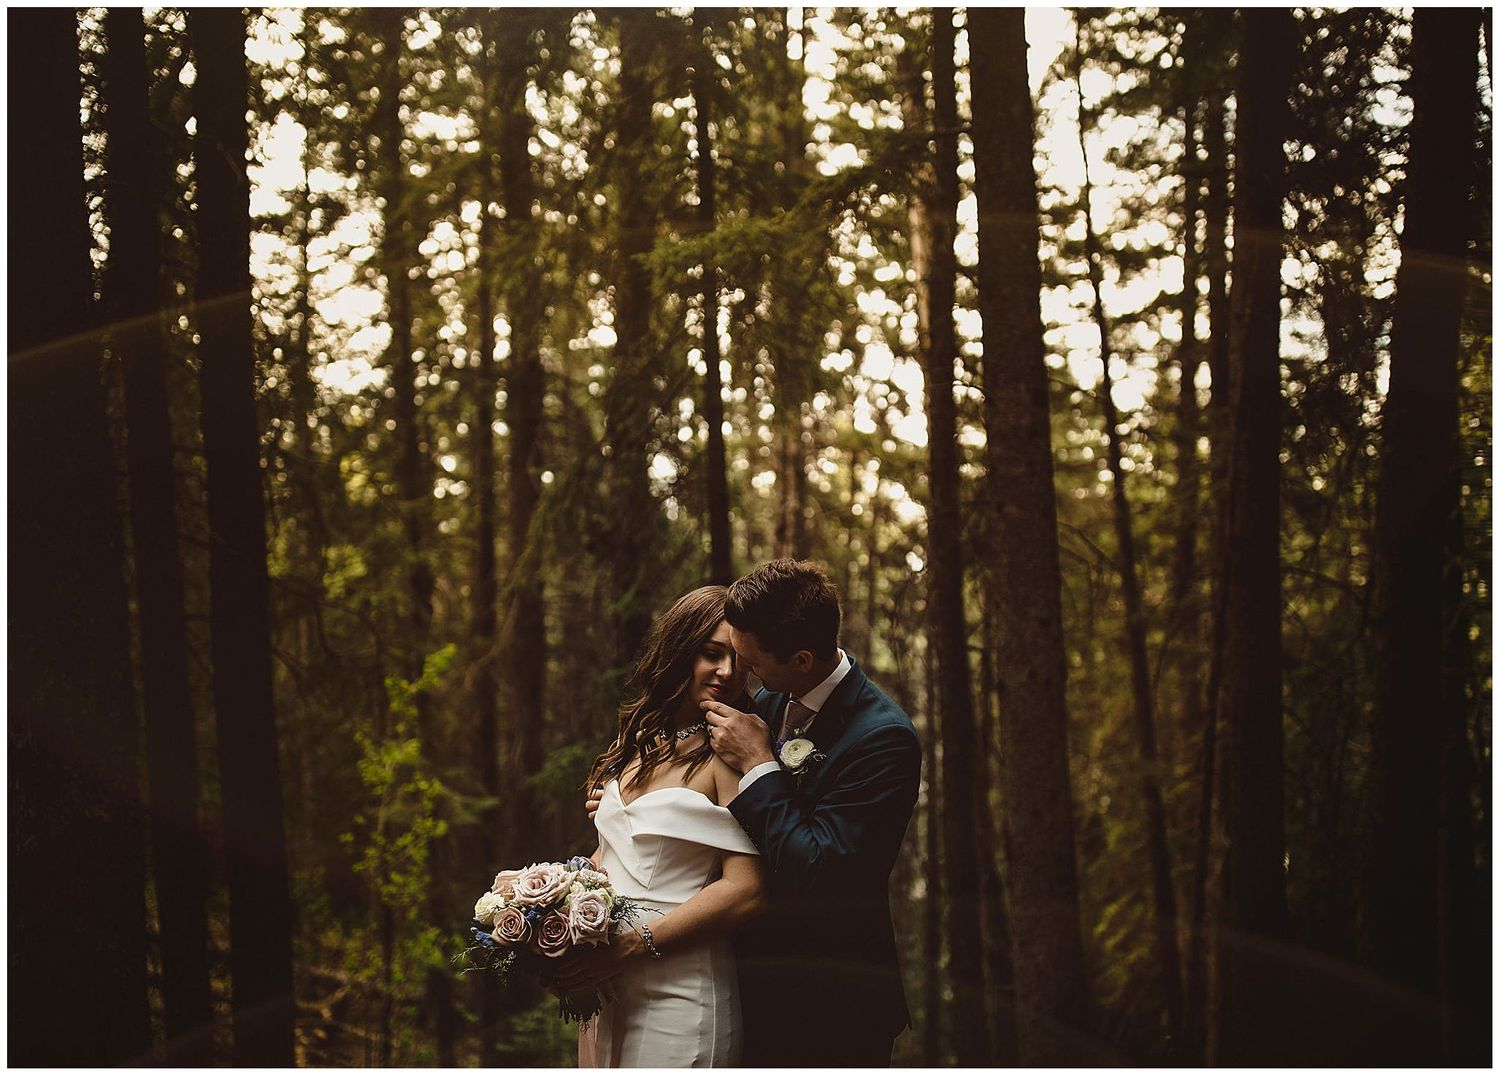 Calgary wedding photographer takes couple into trees